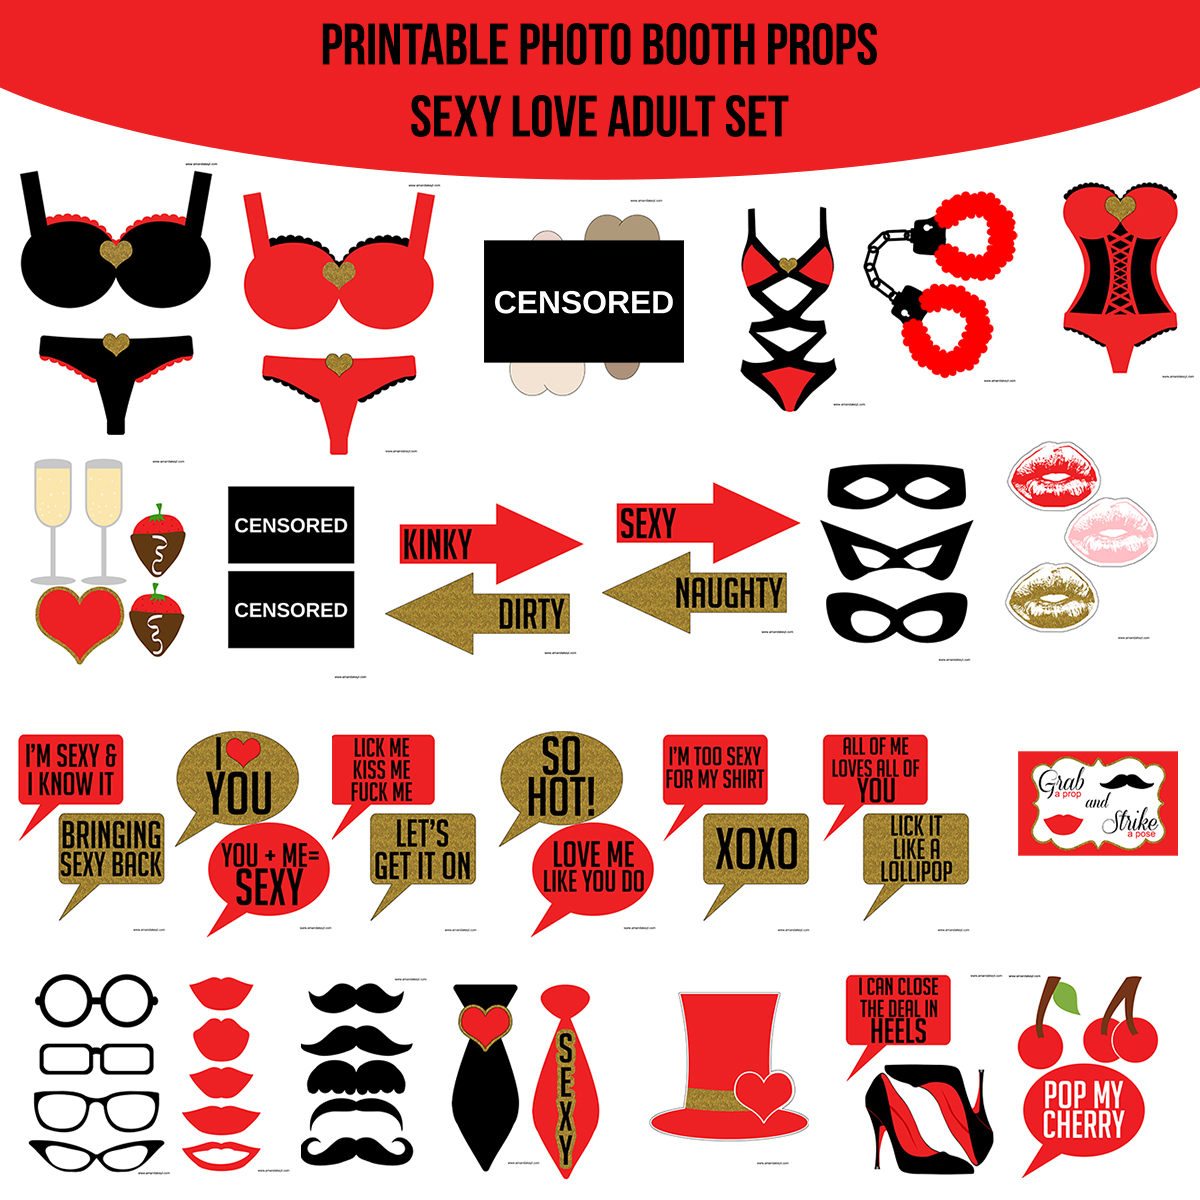 See the Set - To View The Whole Sexy Love Adult Bridal Shower Bachelorette Printable Photo Booth Prop Set Click Here